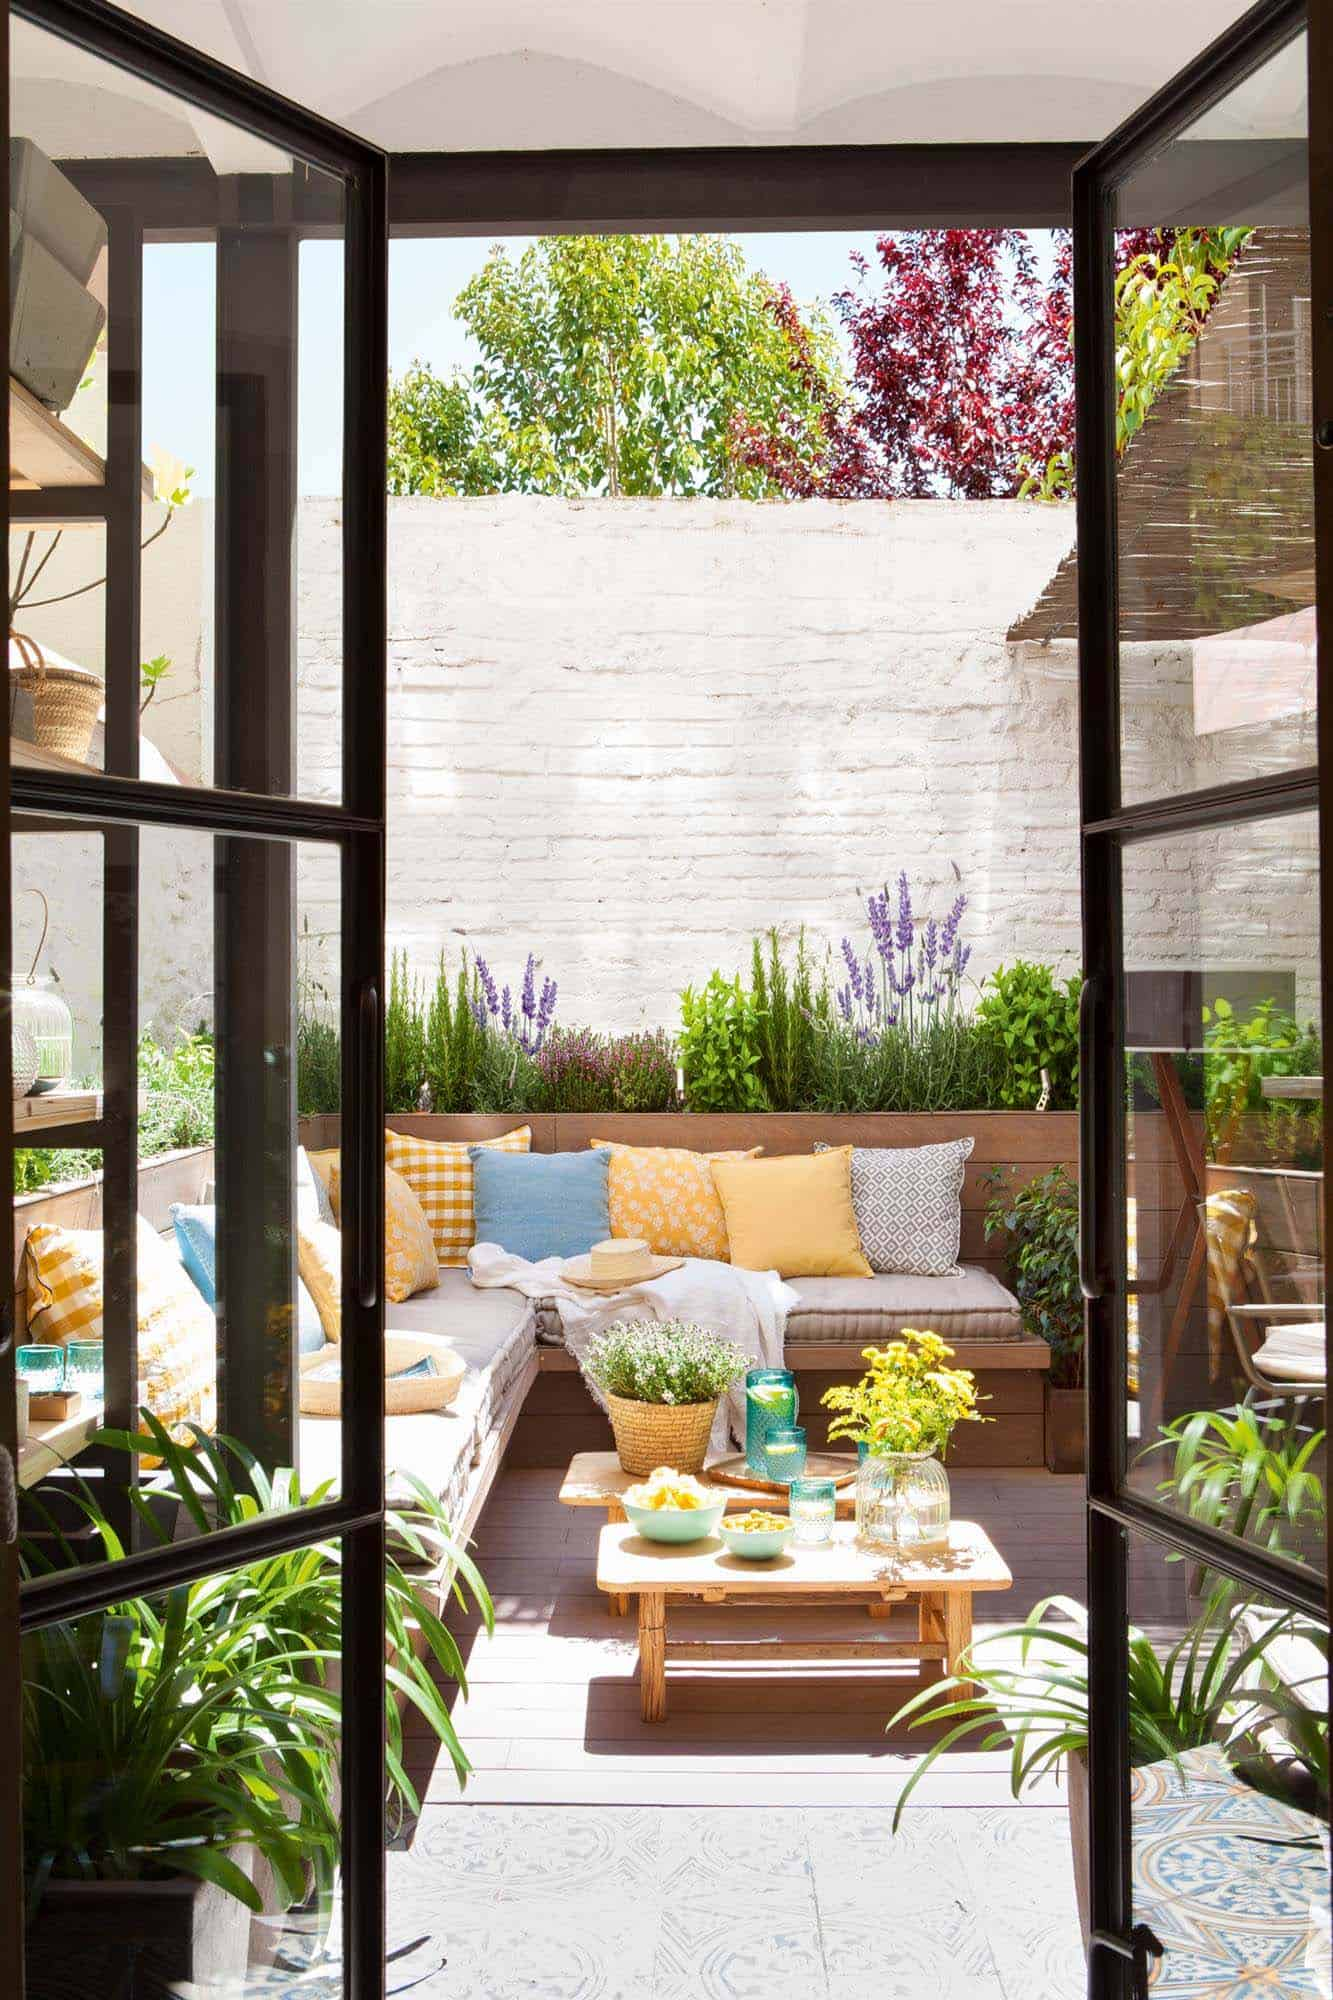 33 Fabulous Ideas For Creating Beautiful Outdoor Living Spaces on Backyard Outdoor Living Spaces id=17941